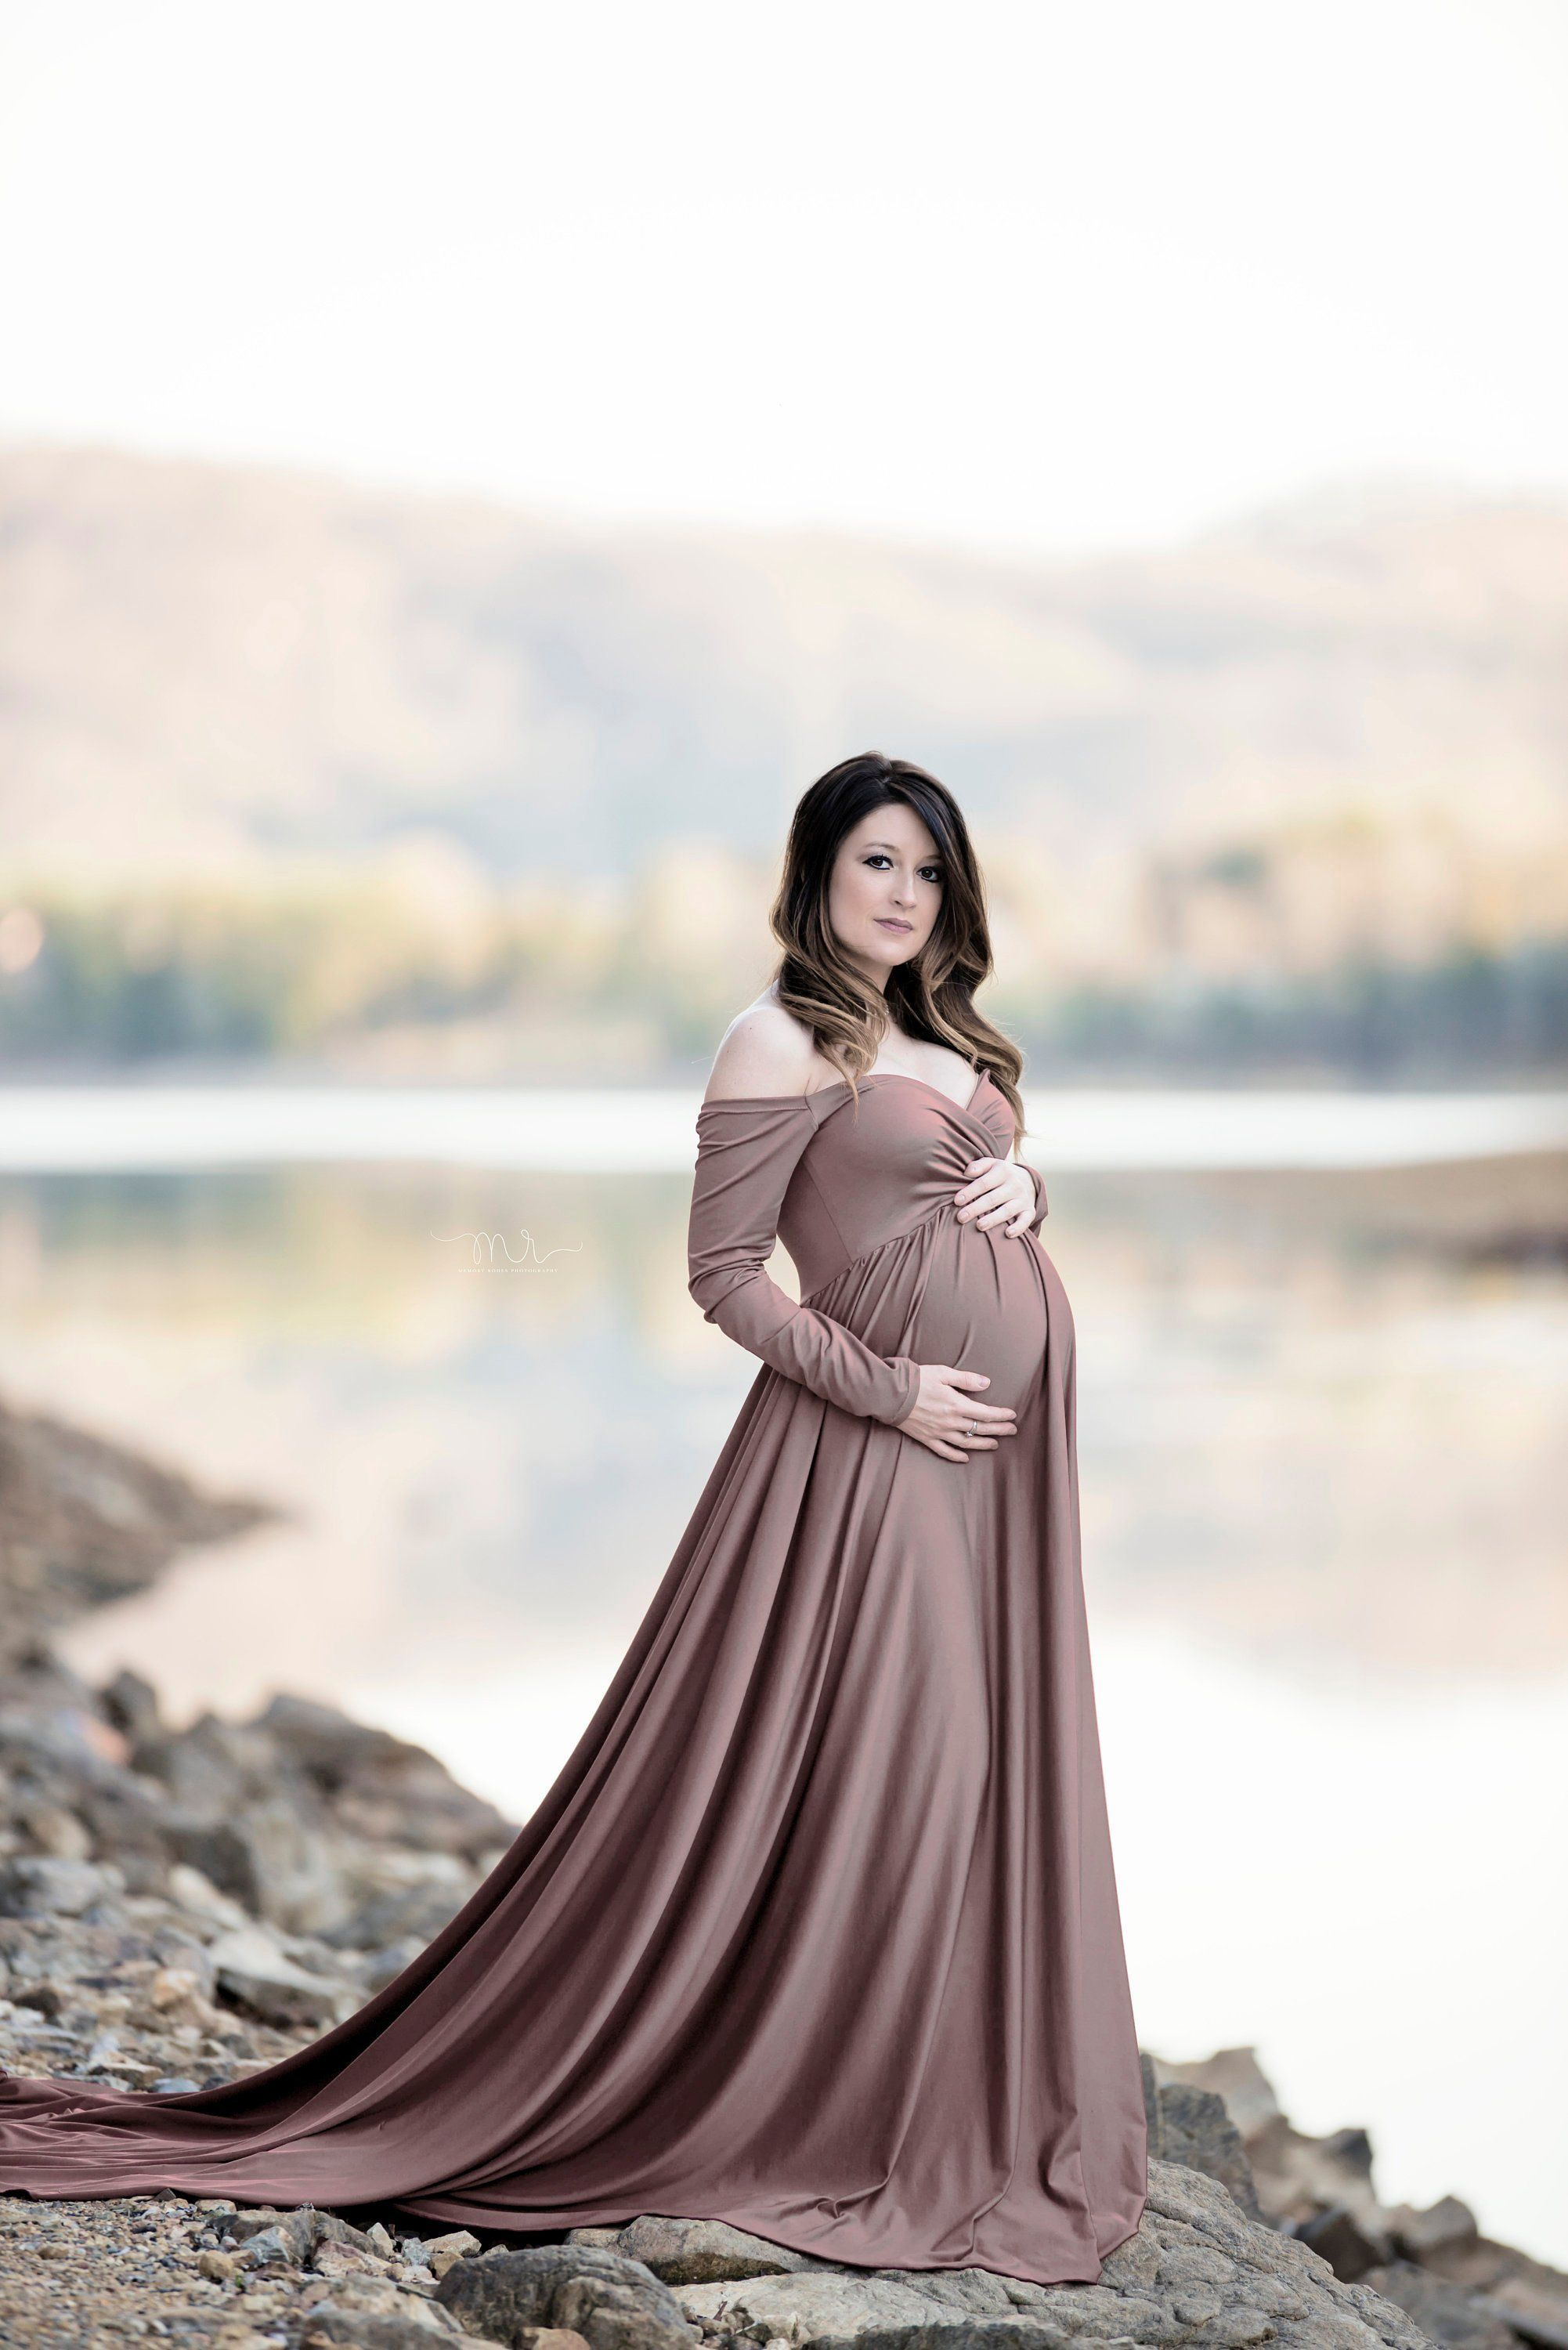 b6fb5427de5f0 Darah Mocha Maternity Dress,Off Shoulders, Long Sleeves Maternity, Baby  Shower, Bridesmaids, Photo Prop Dress / Grown , half circle by SilkFairies  on Etsy